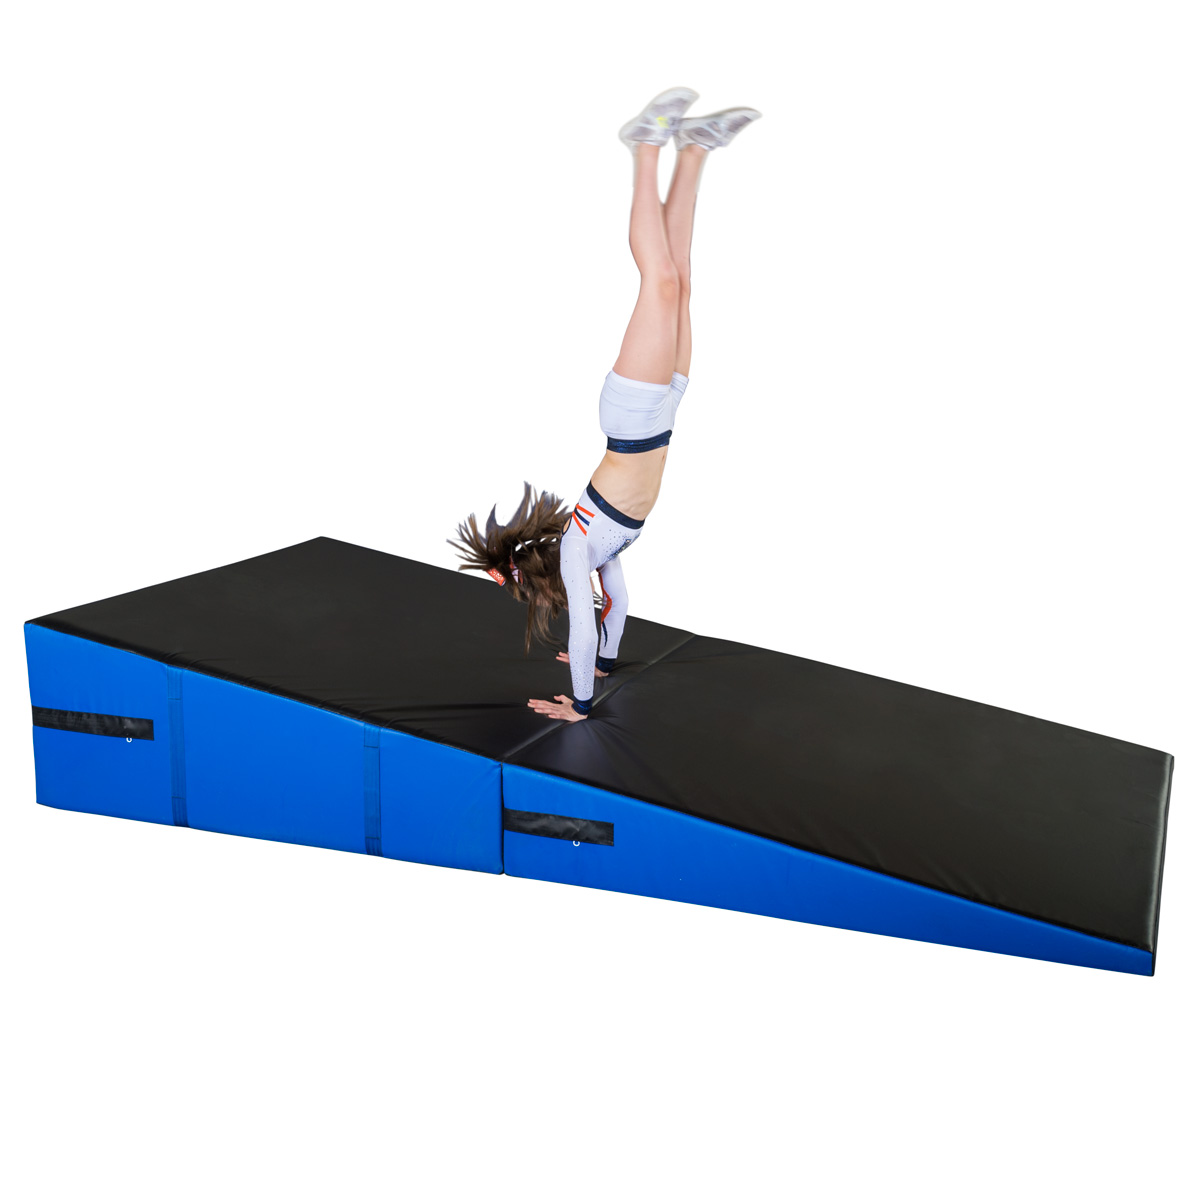 cheerleader doing a front round-off on large folding incline mat from mancino